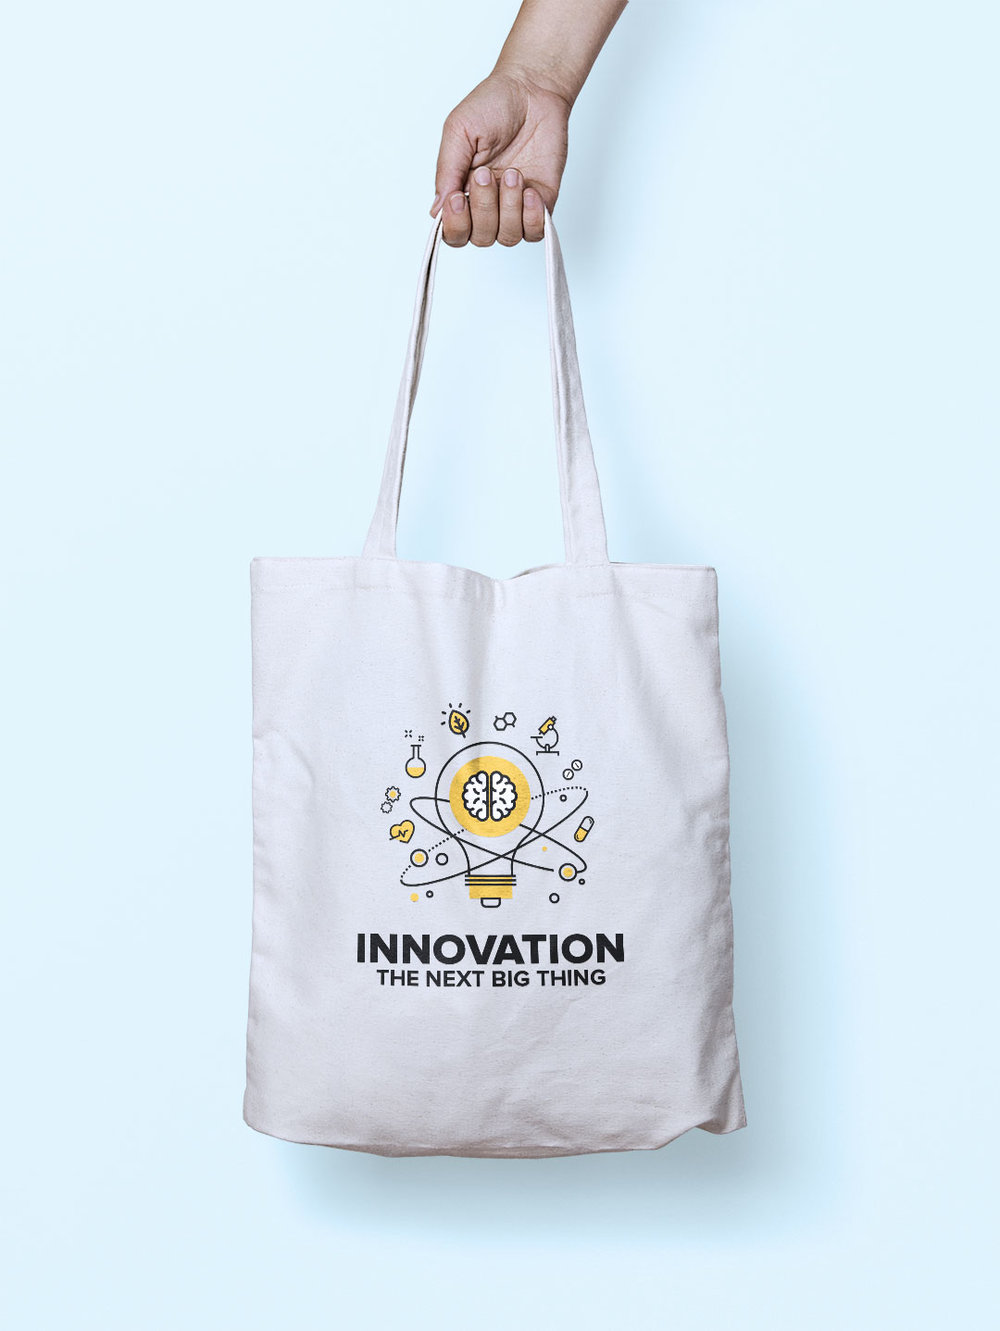 Innovation | Tote bag graphic design Manly, Sydney